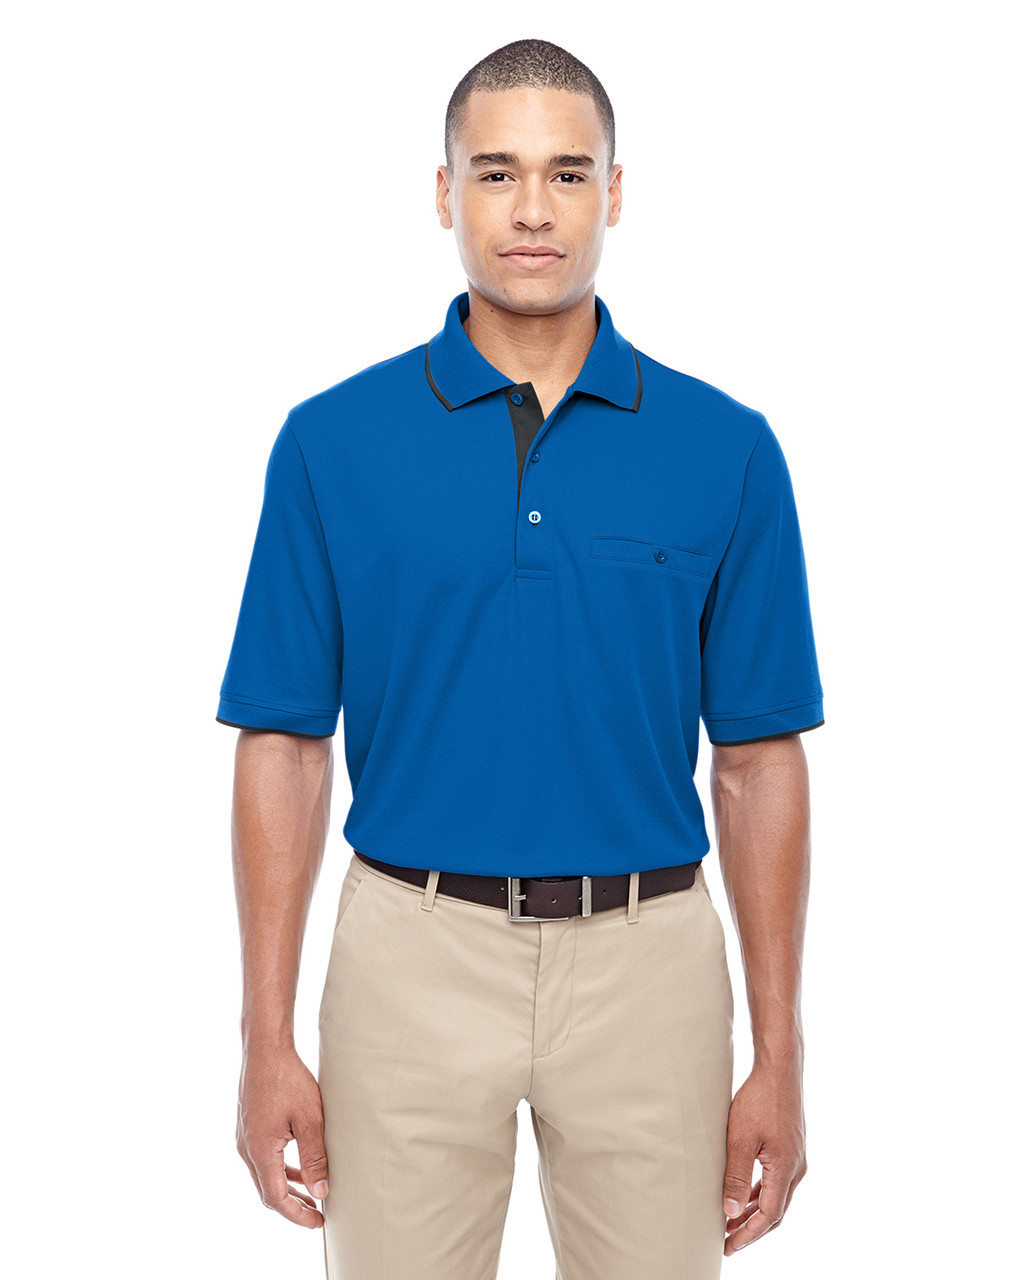 True Royal 88222 Ash City - Core 365 Men's Motive Performance Pique Polo Shirt with Tipped Collar   Blankclothing.ca